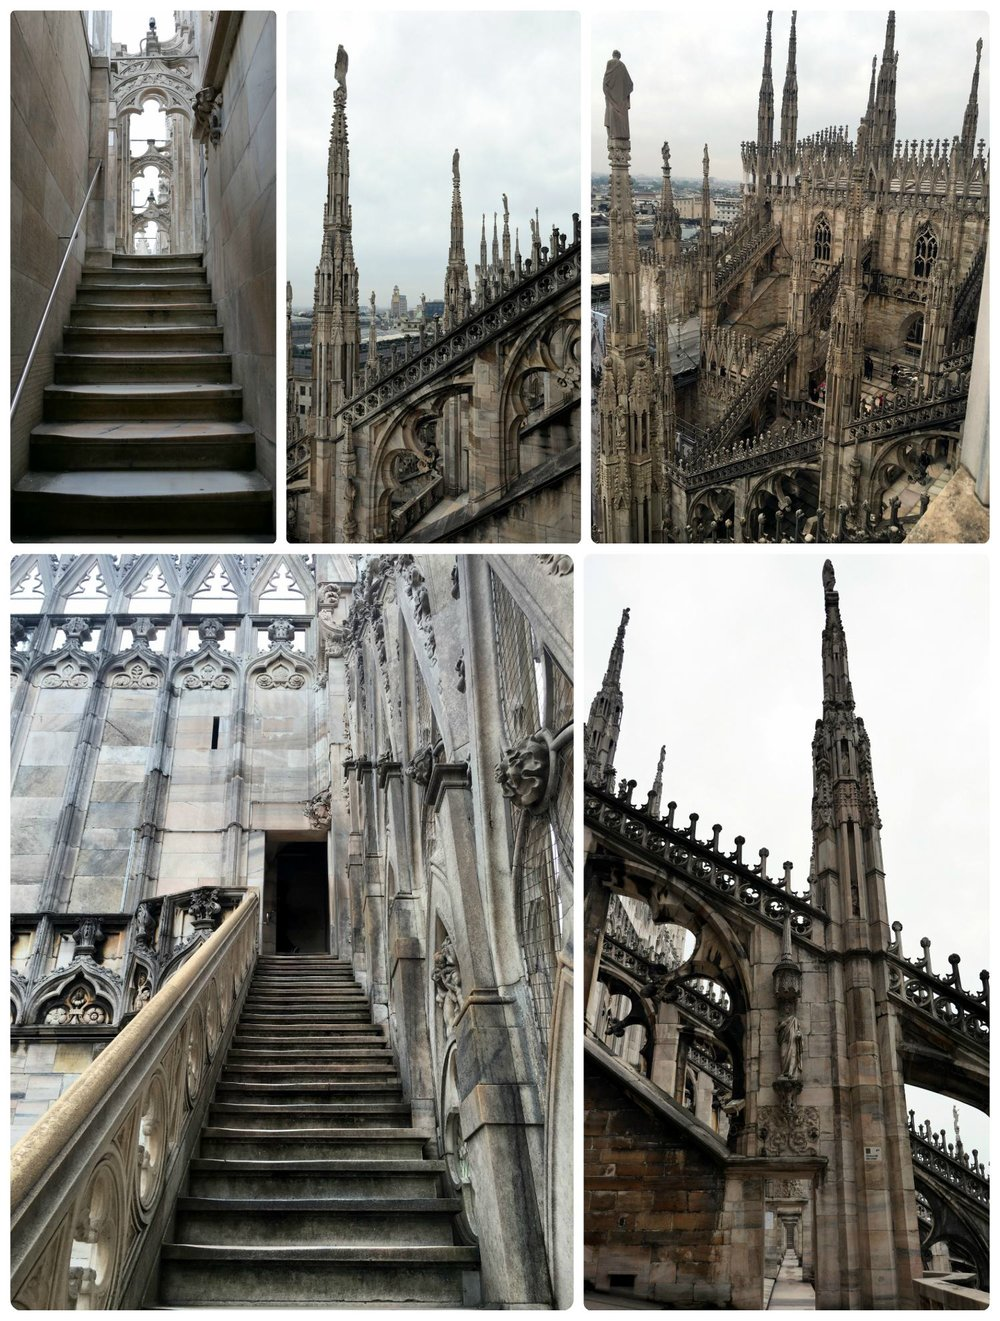 The Terraces at the top of the Milan Cathedral (Duomo) are stunning. You can take the stairs up, or a lift, but either way, there's a final flight of stairs that must be taken to get to the very top and center of the terraces.